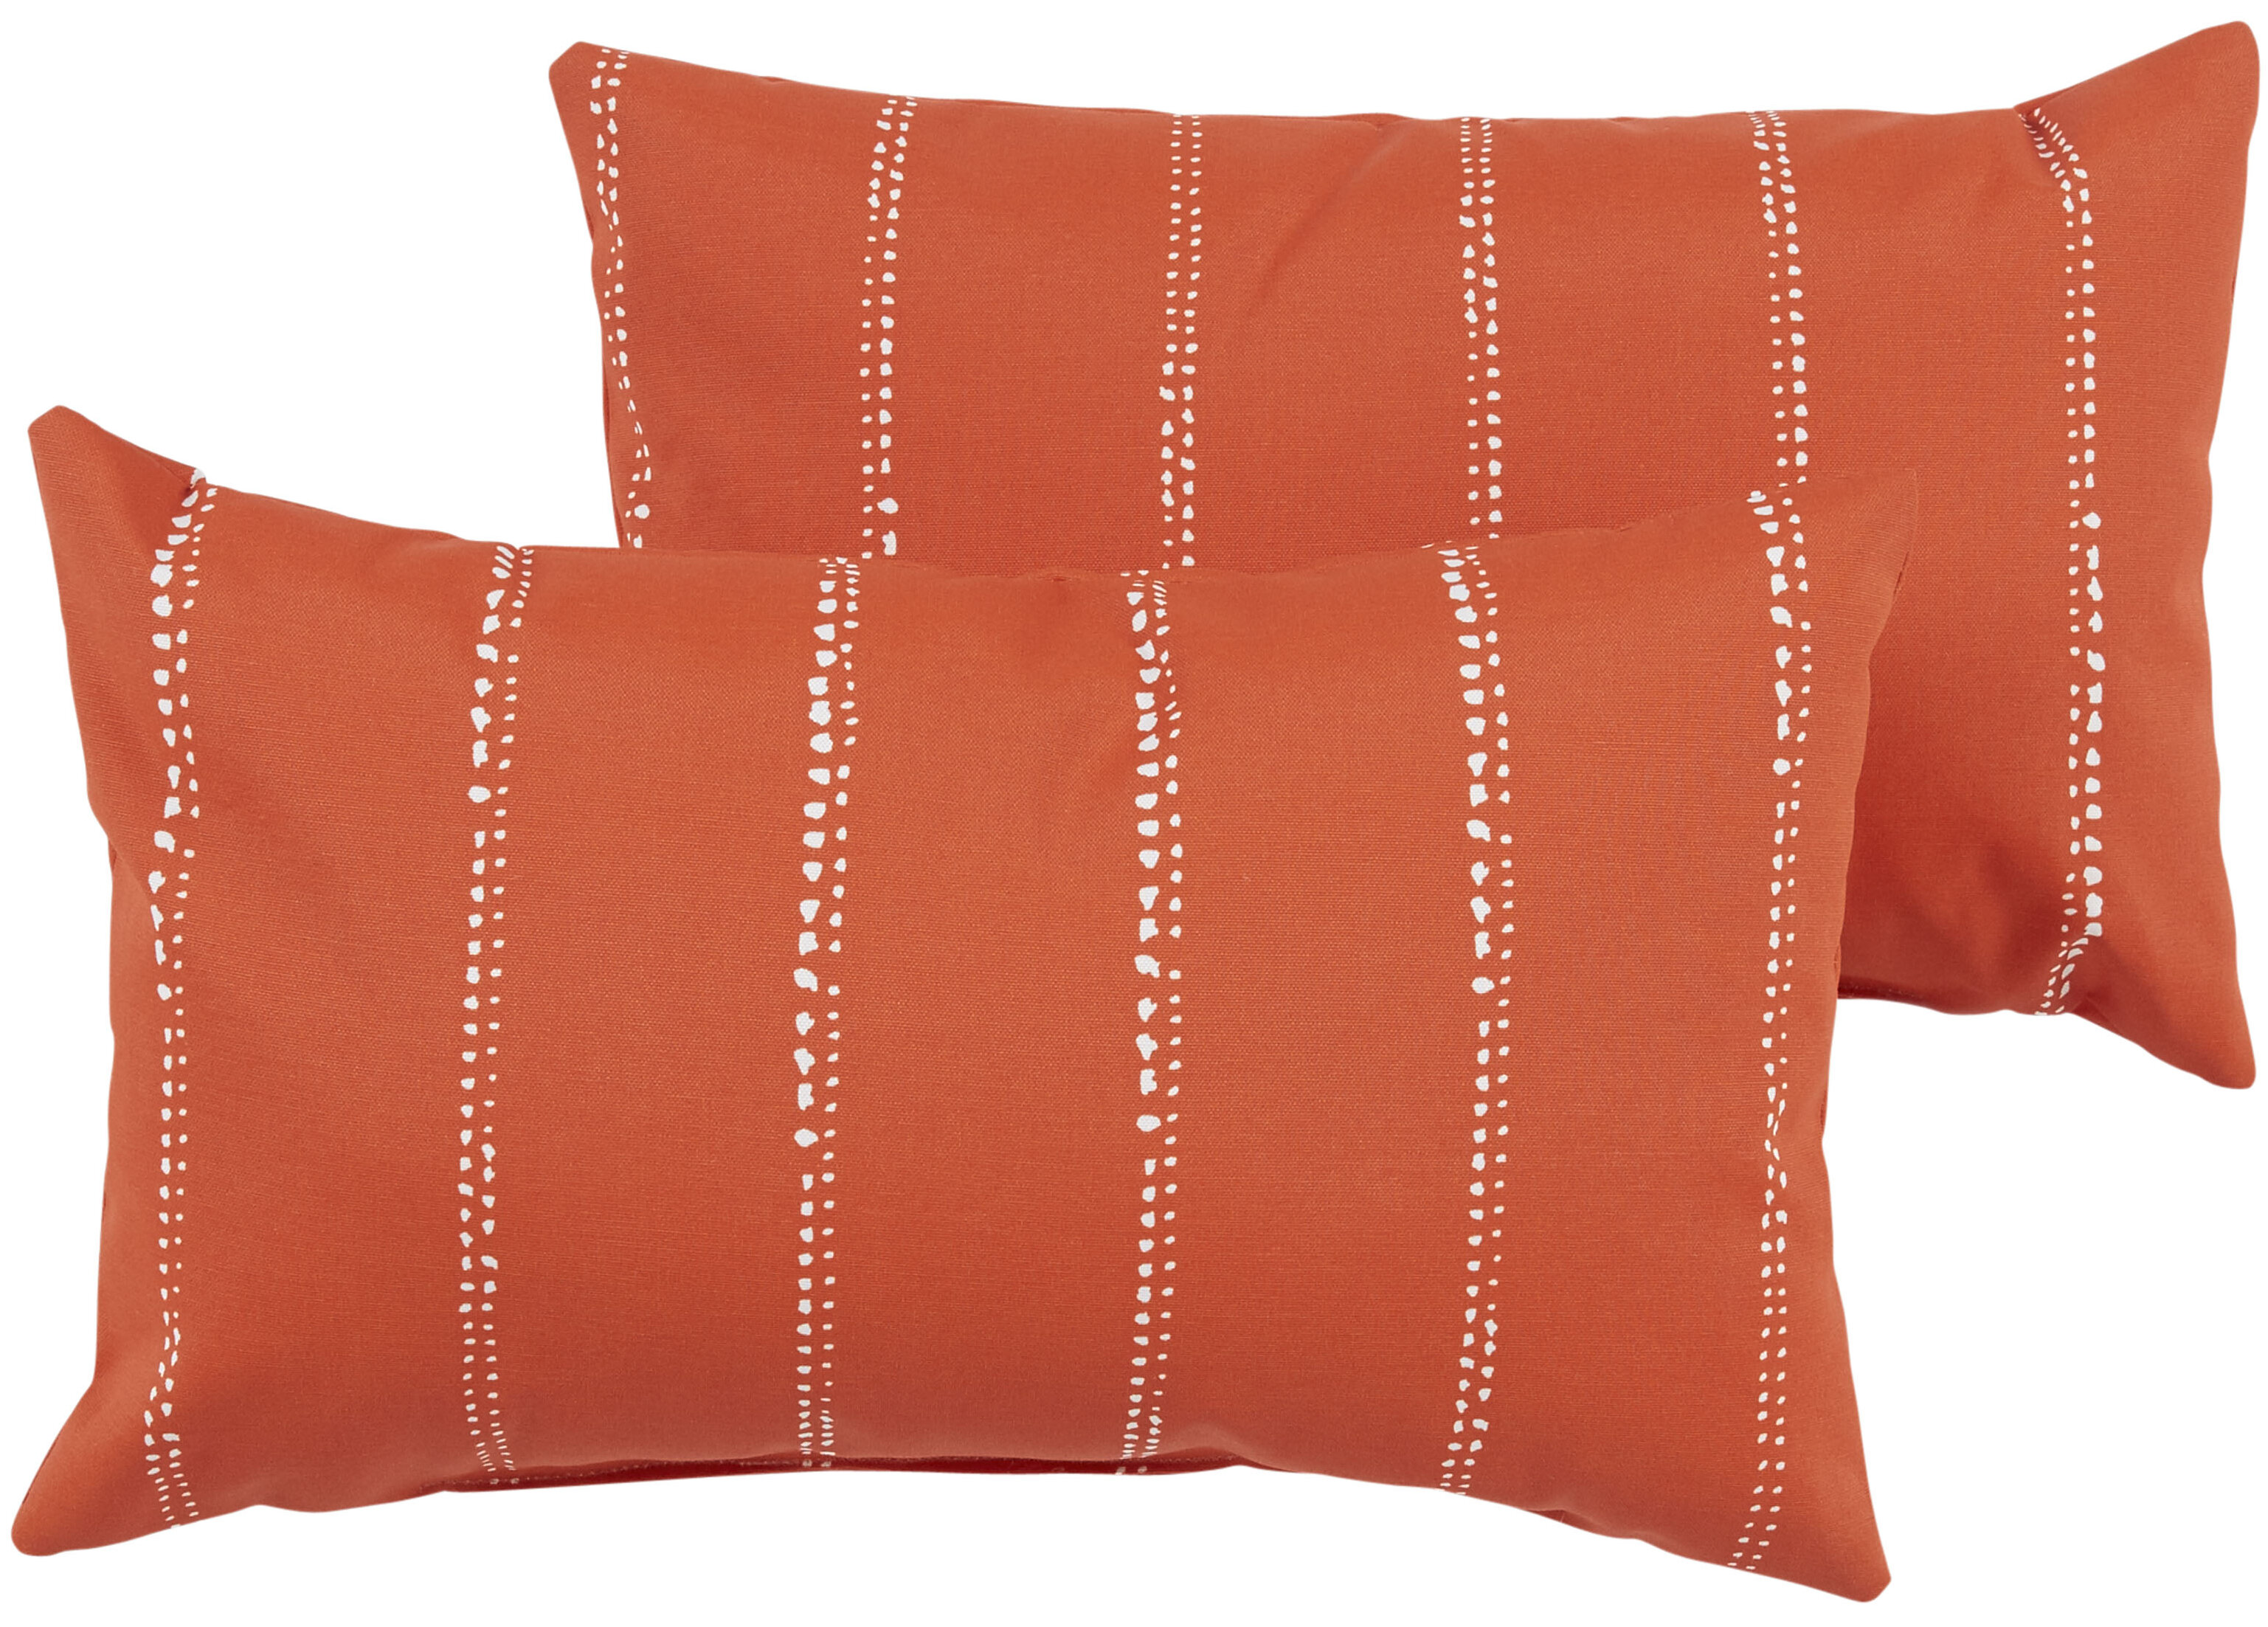 thomas trellis lumbar pillow today handmade orange shipping throw home usa greek geometric in free product ivory garden collection overstock